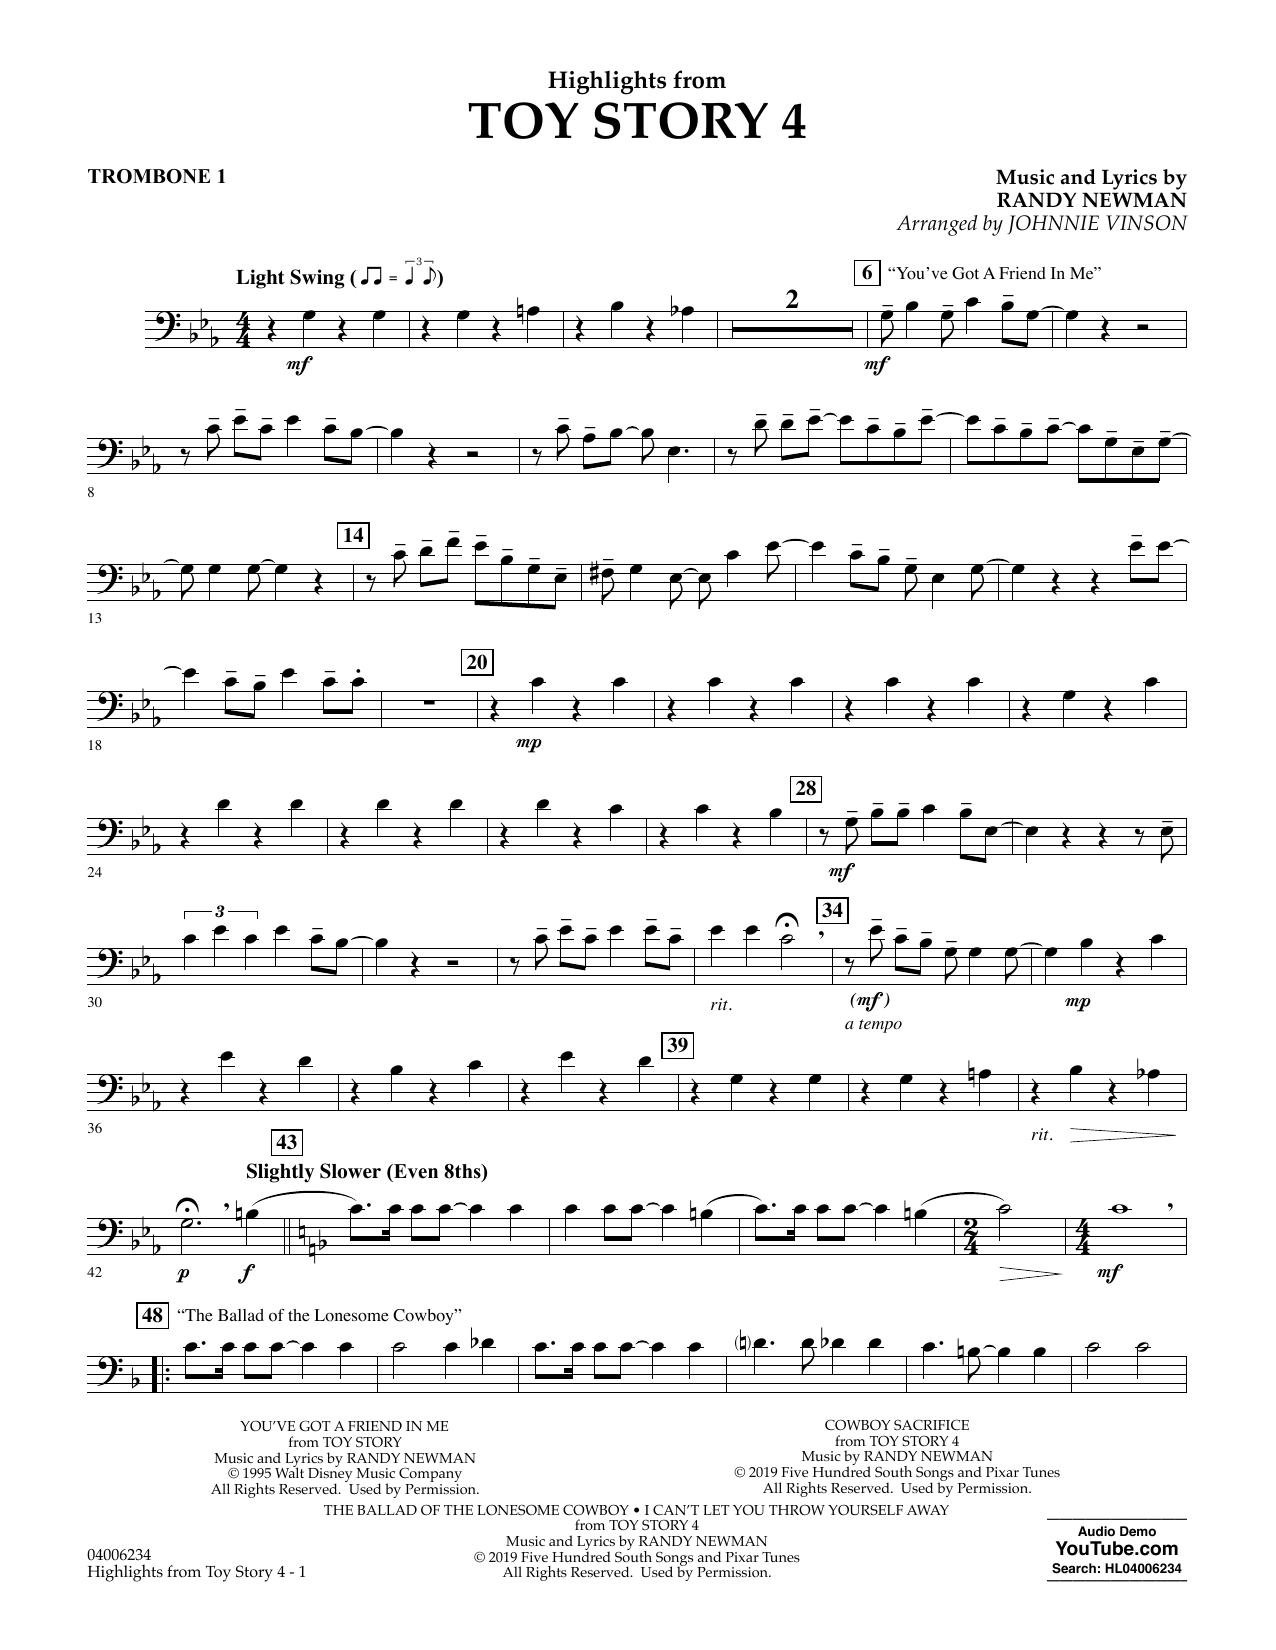 Highlights from Toy Story 4 (arr. Johnnie Vinson) - Trombone 1 (Concert Band)